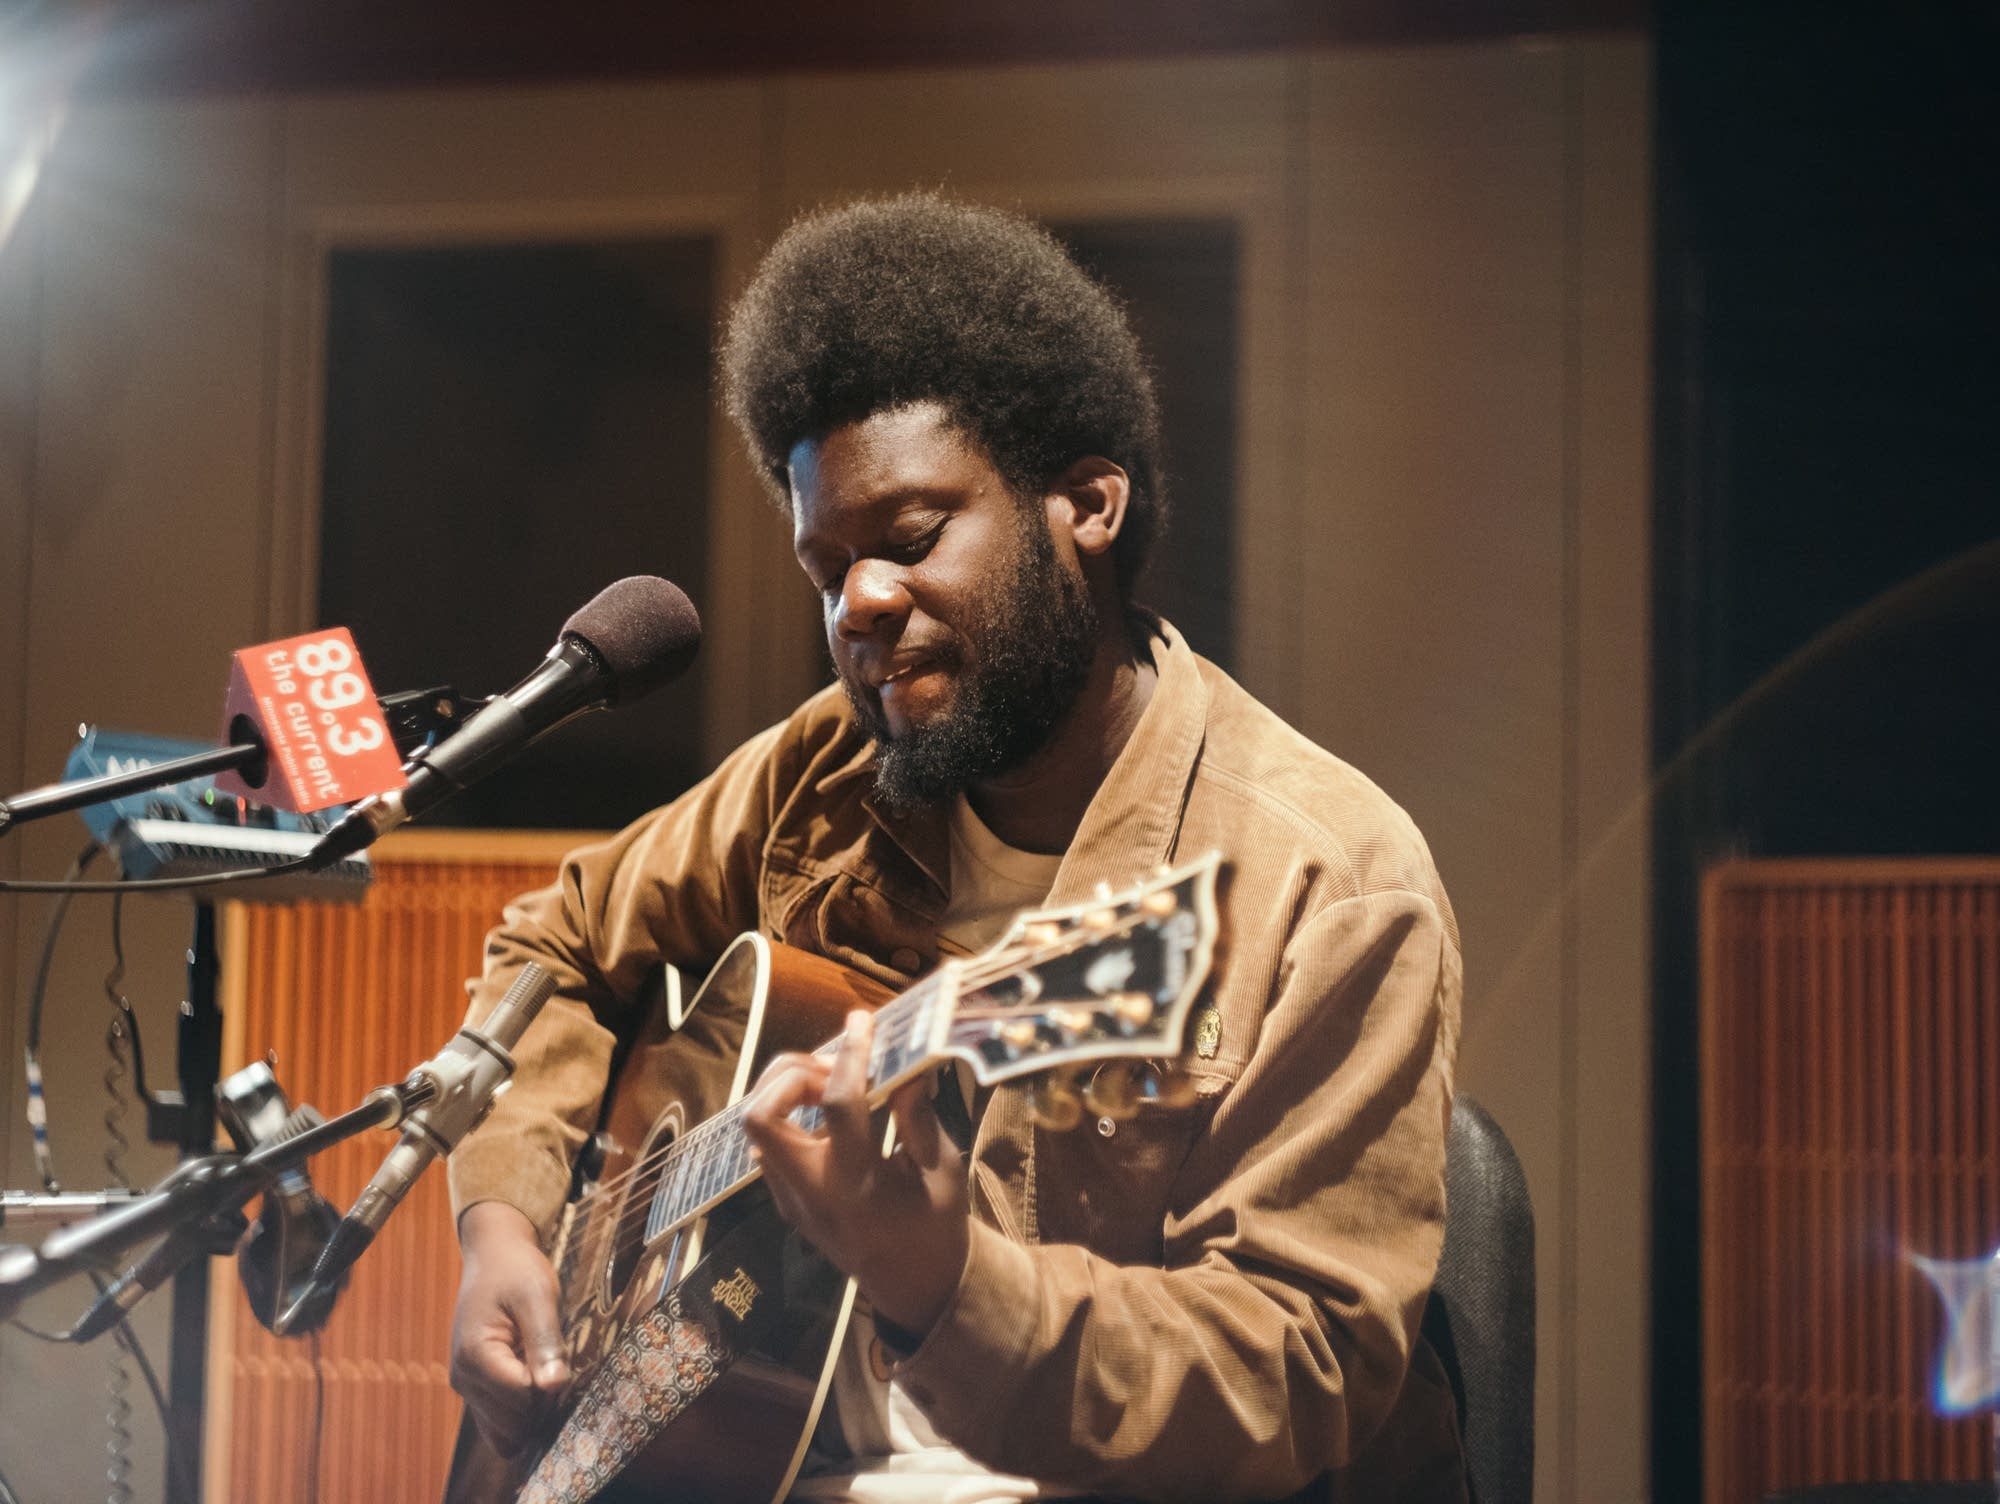 Michael Kiwanuka performs in The Current's studios